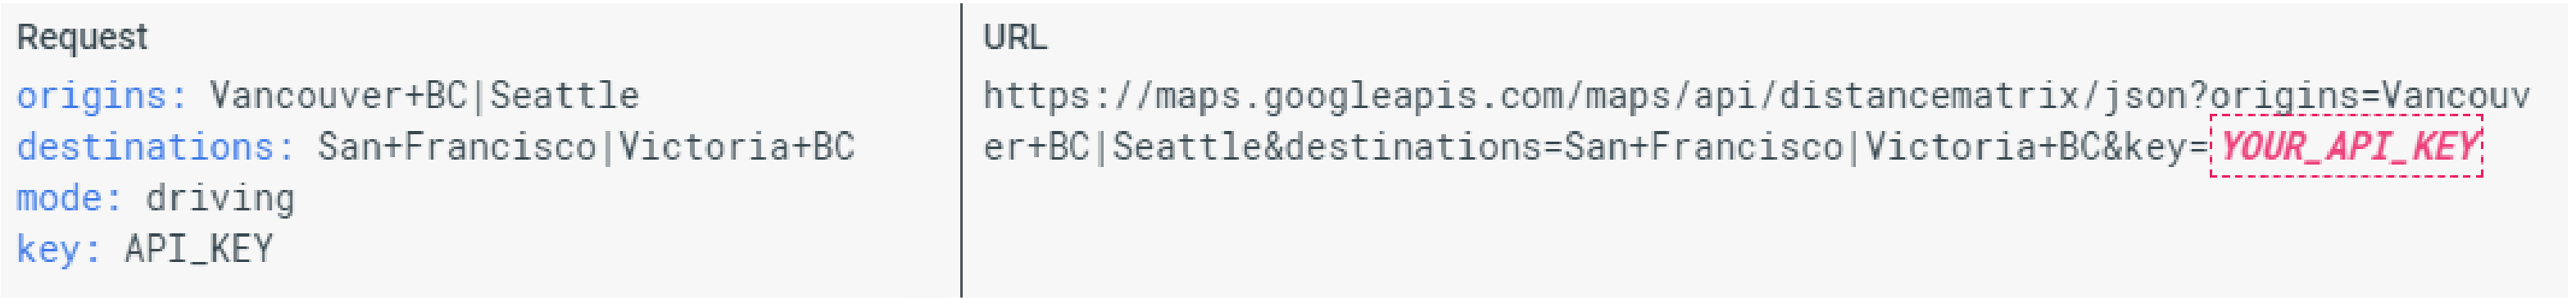 Google maps api example short